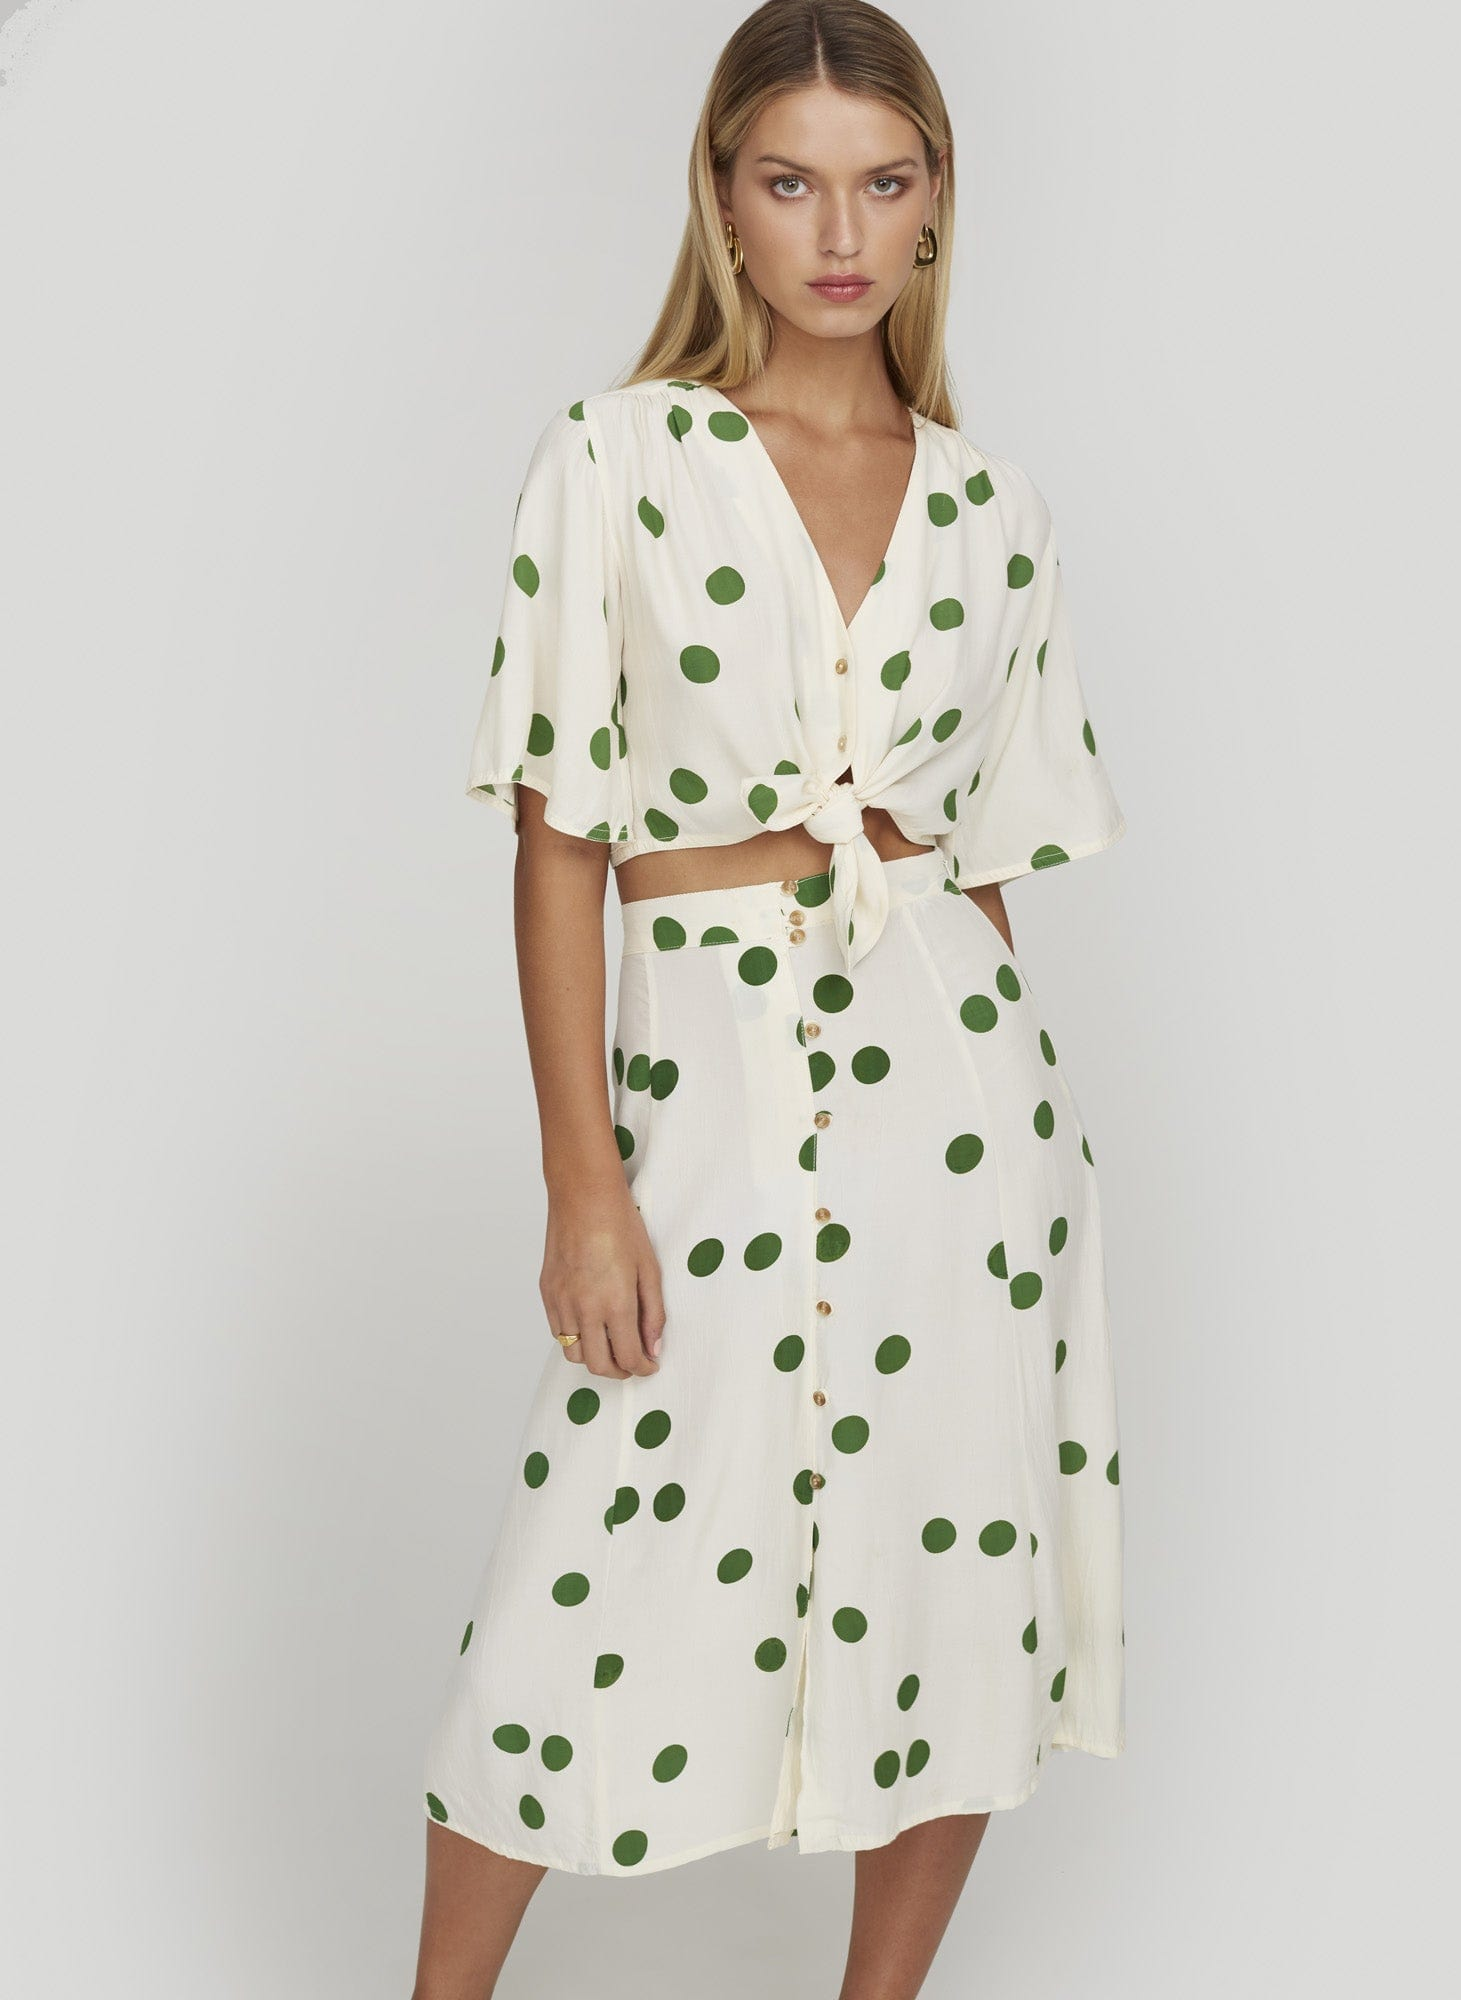 LOLITA DOT PRINT - GREEN - MARIN SKIRT